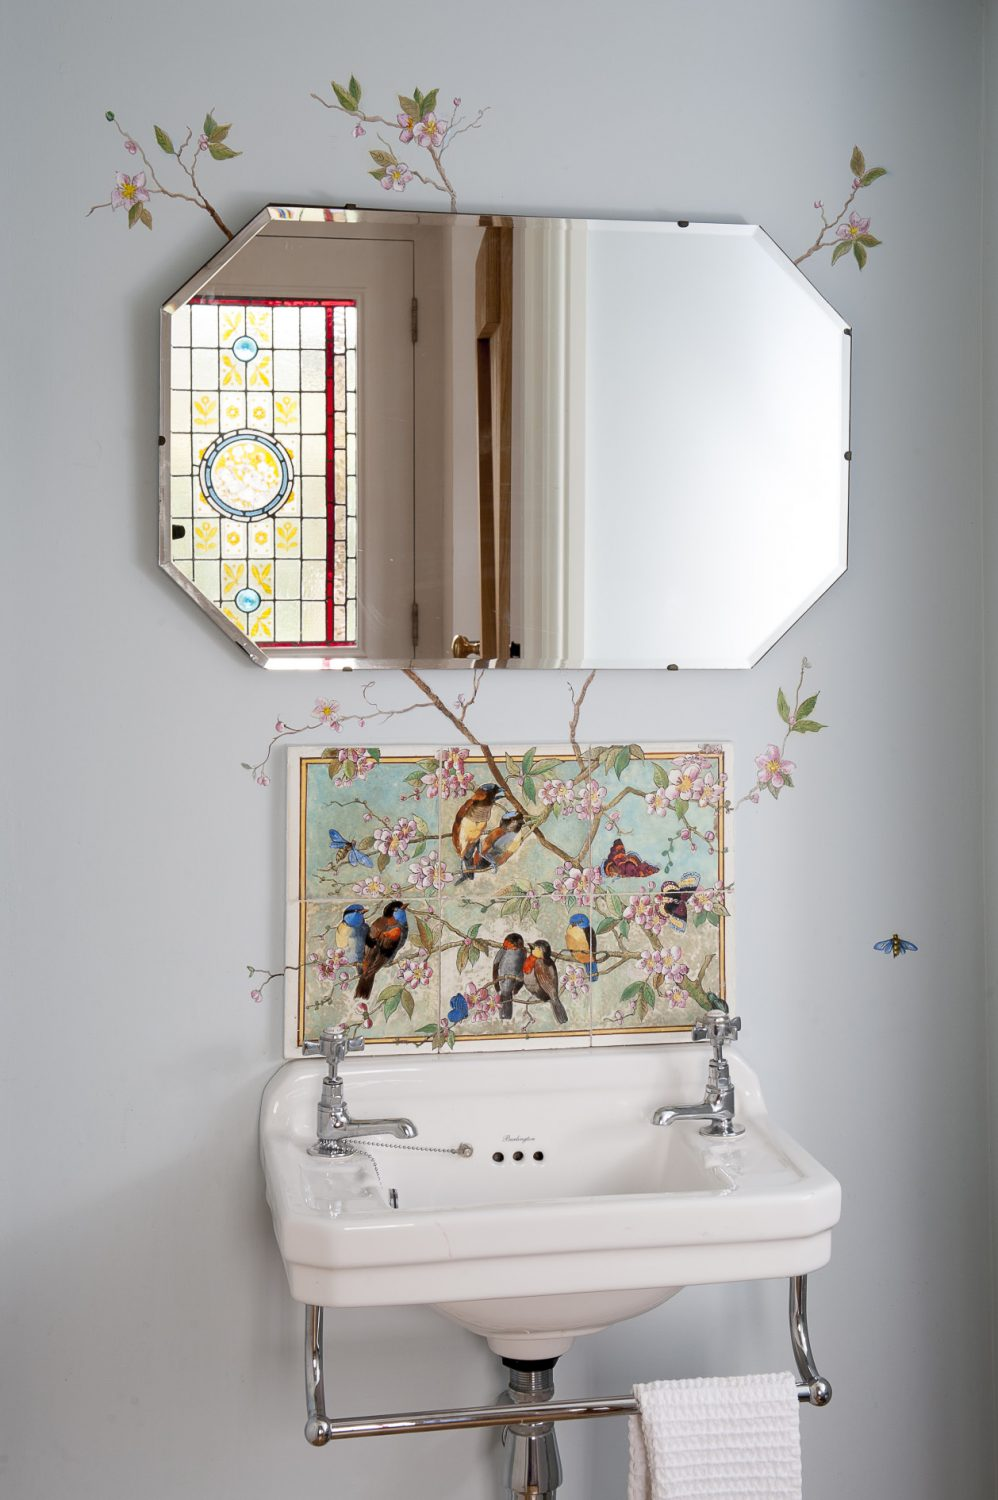 The cloakroom, just off the hall, is painted in Little Greene's 'Delicate Blue'. The tiles above are Victorian, while the murals painted around them are by Lucinda Bothwell, a local artist